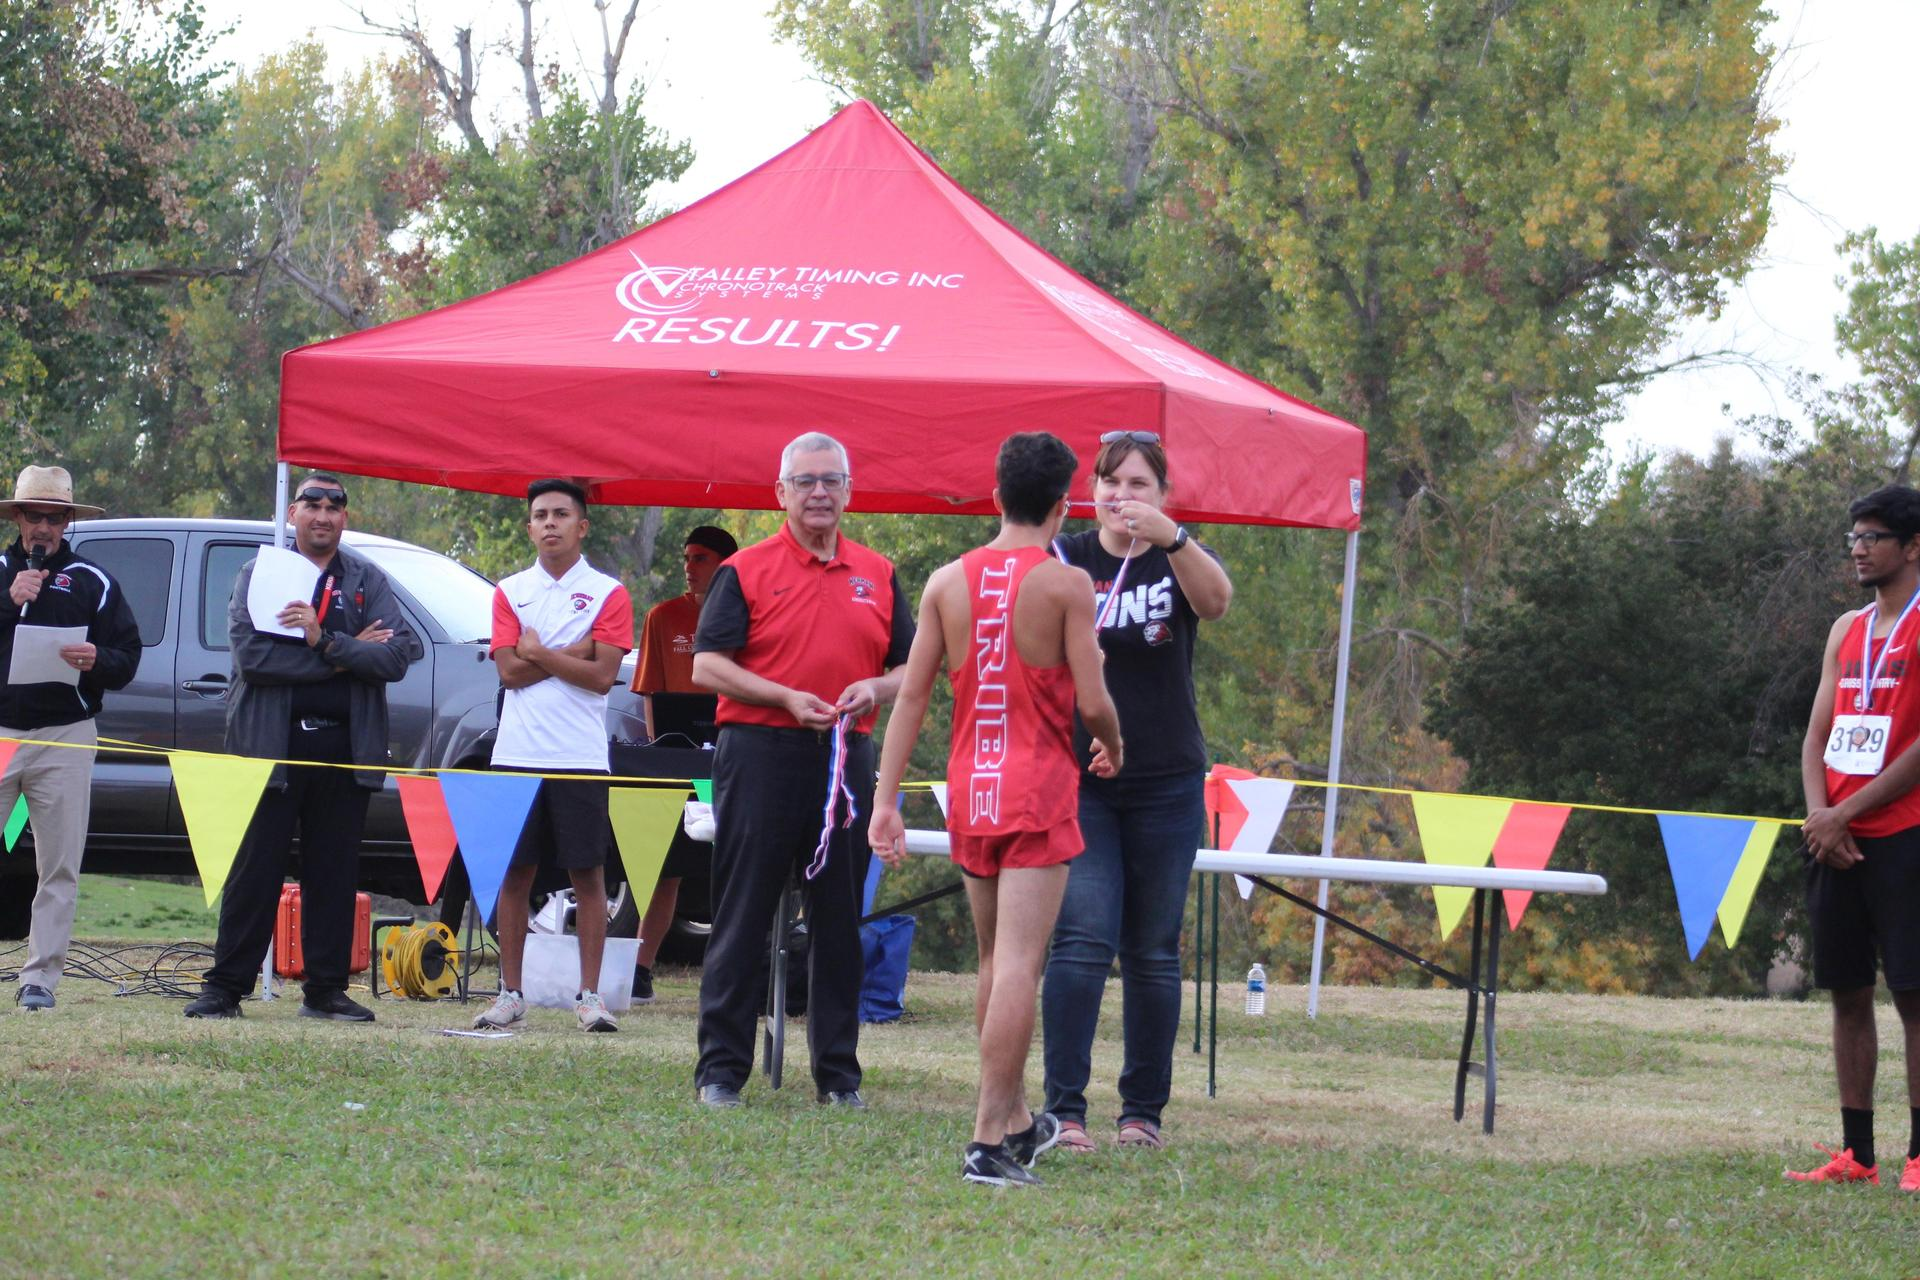 Ryan Diaz receiving medals